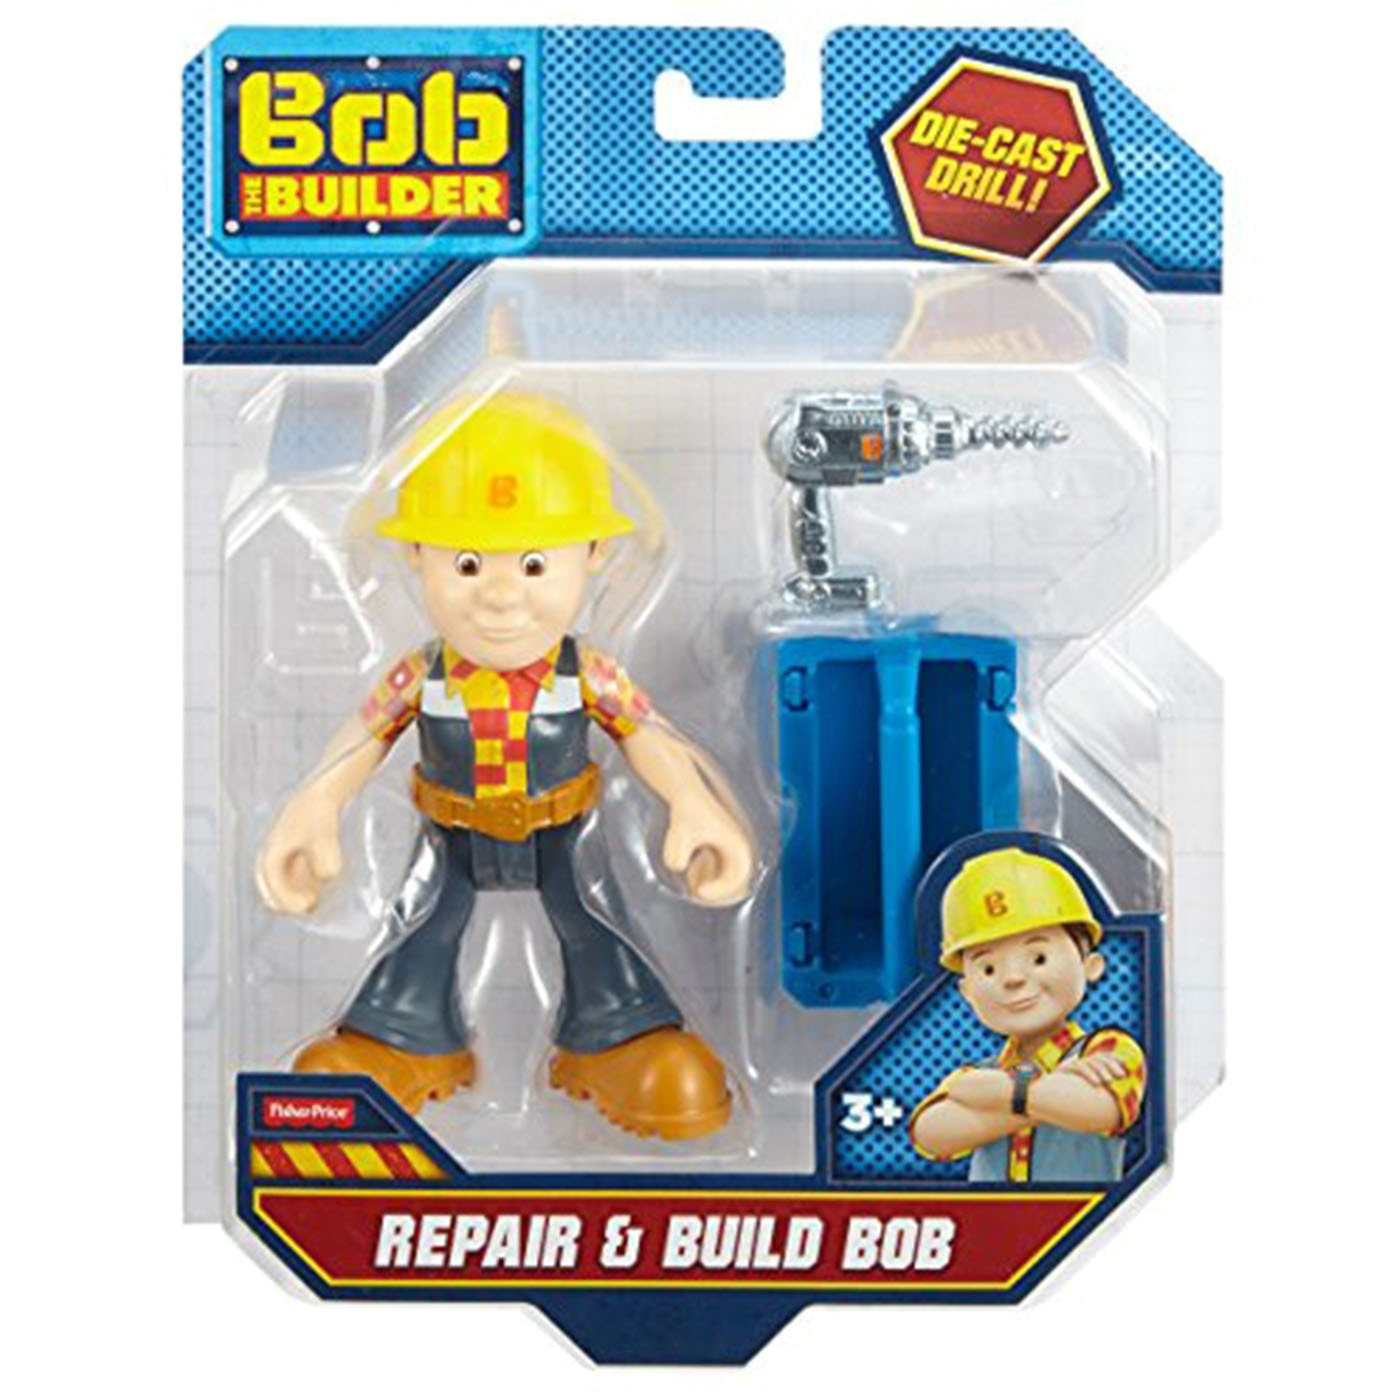 ACTION BOB FIGURE REPAIR & BUILD